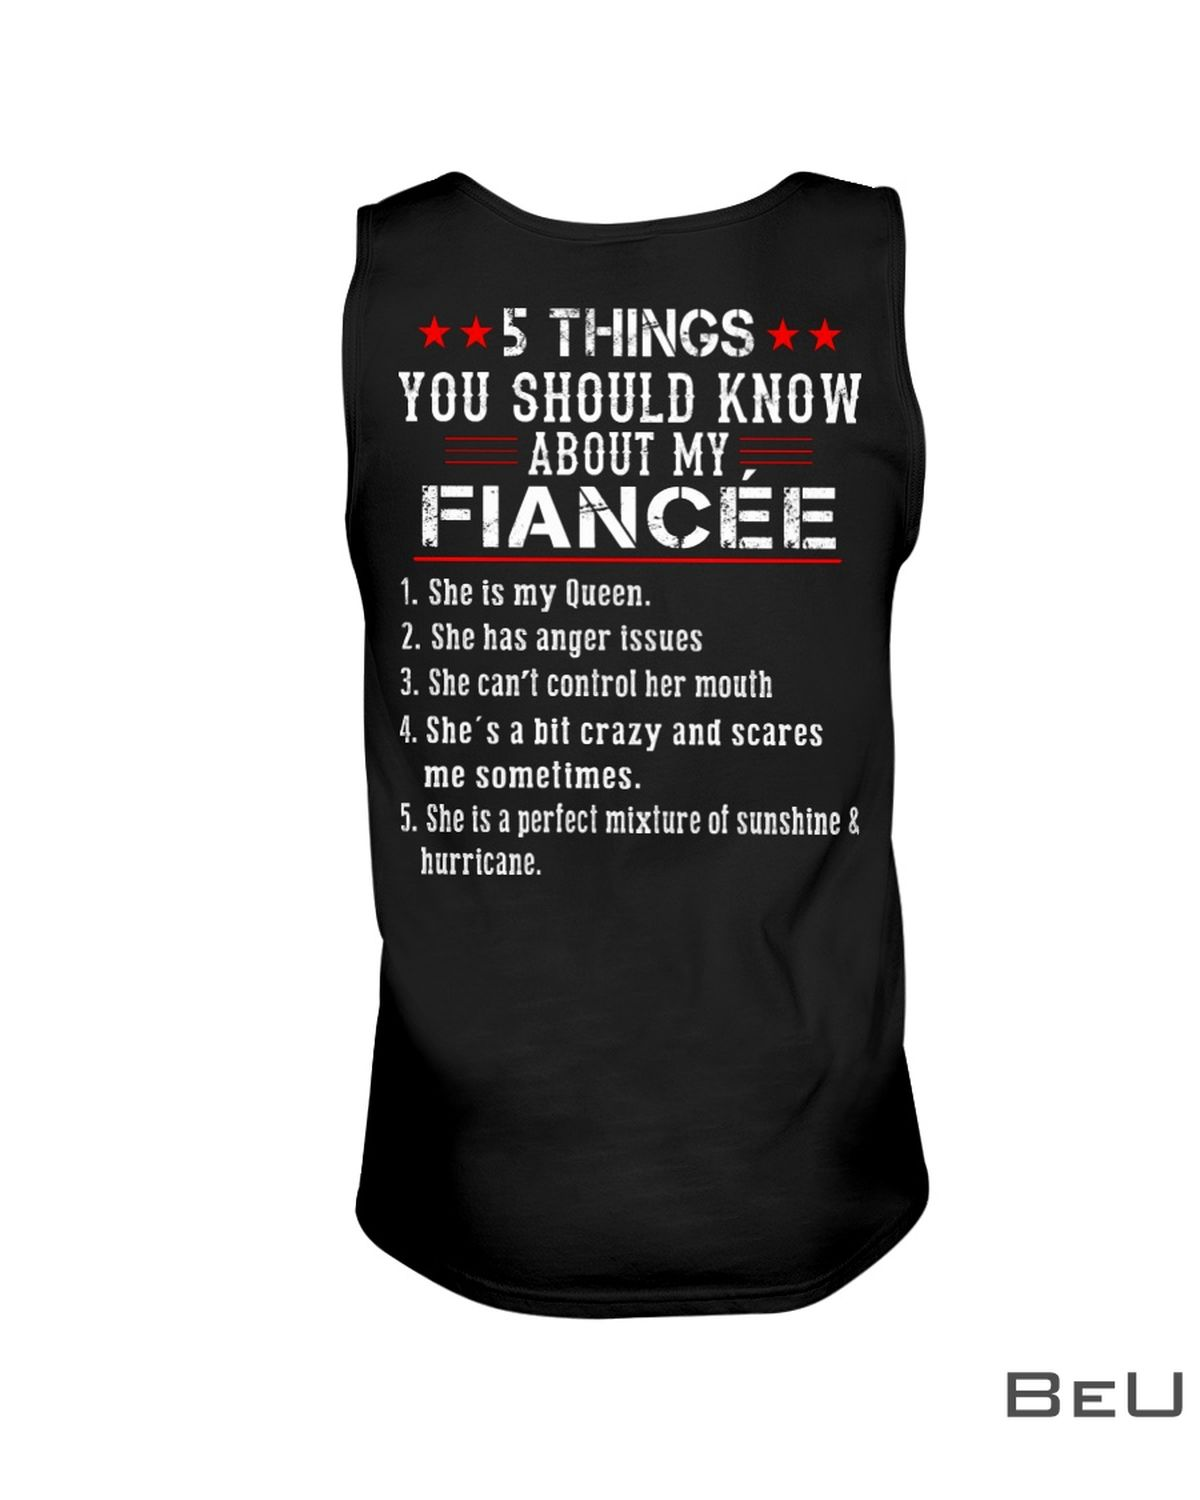 5 Thing You Should Know About My Fiancée Shirtc